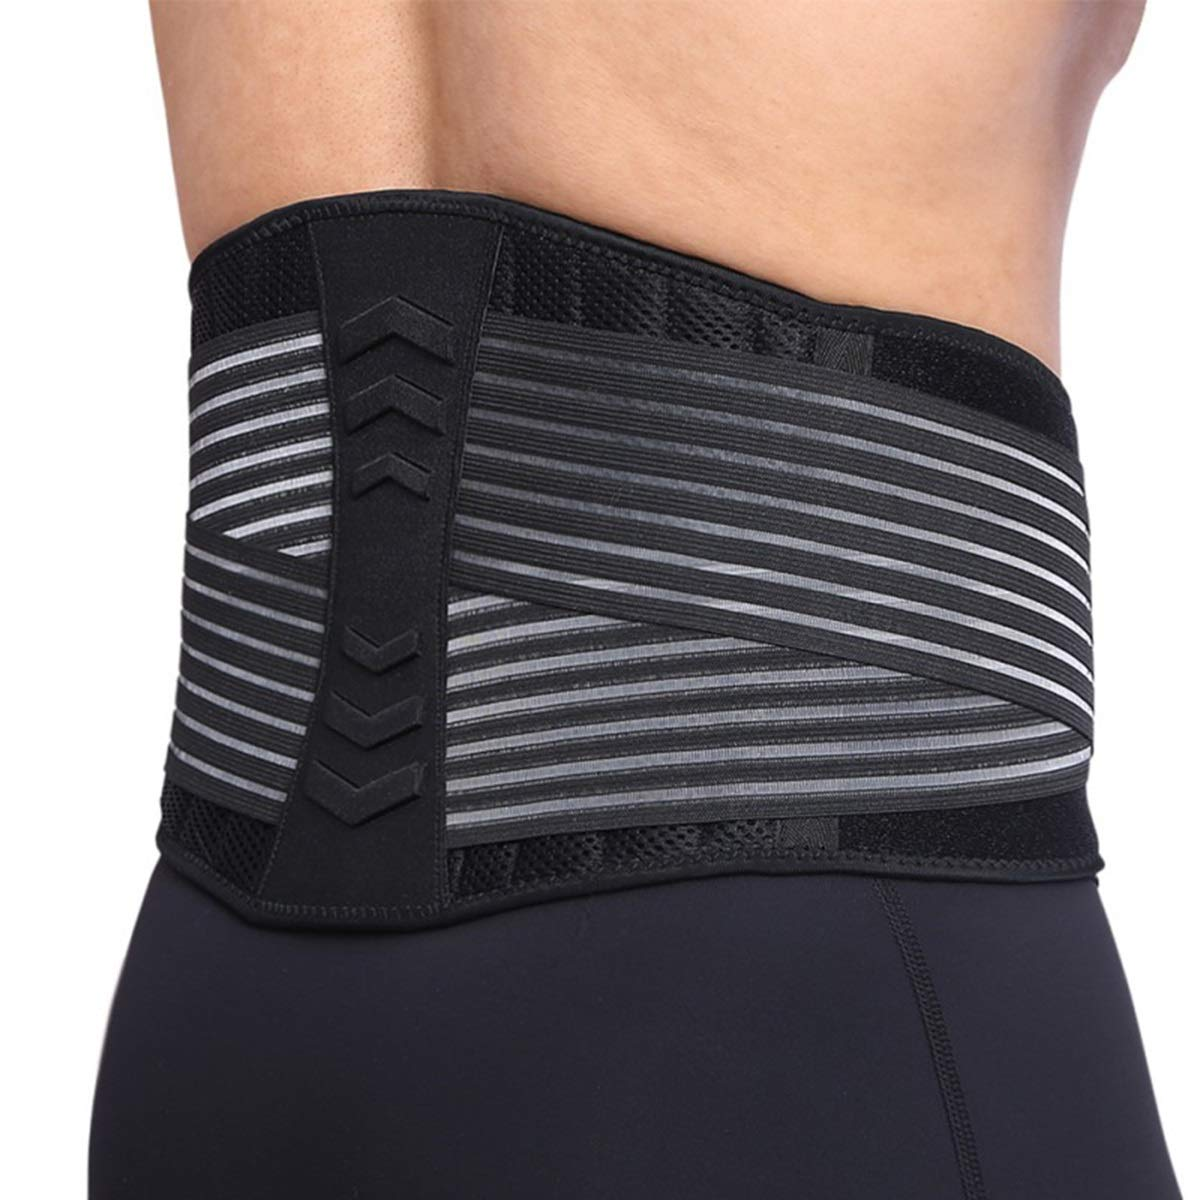 Adjustment Back Brace Lumbar Support Belt Breathable Lower Back Pain Relief Lifting Work Waist Protection for Men & Women (Size : M) by Yesbaby